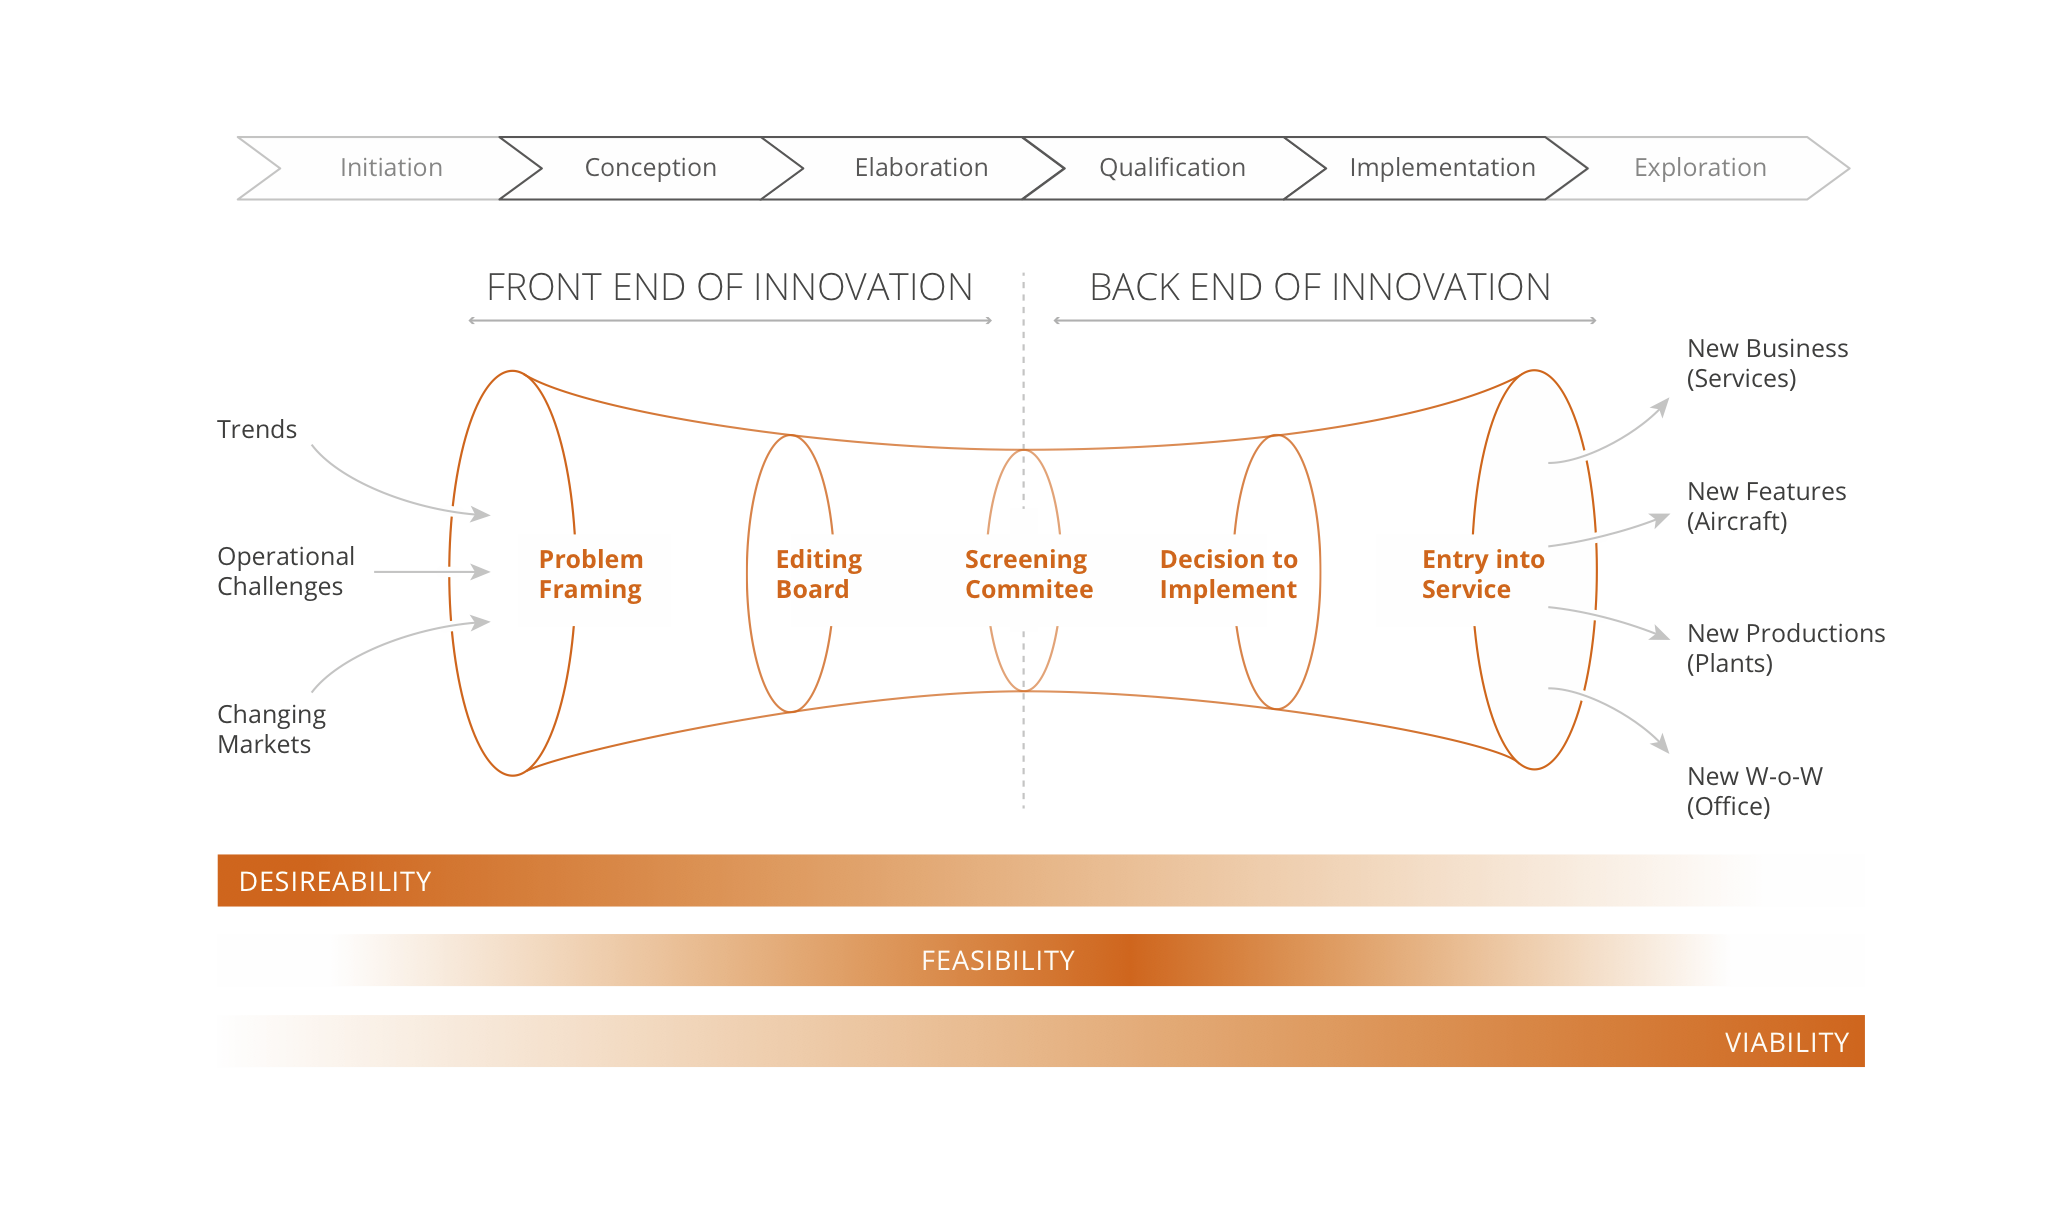 Airbus'innovation funnel